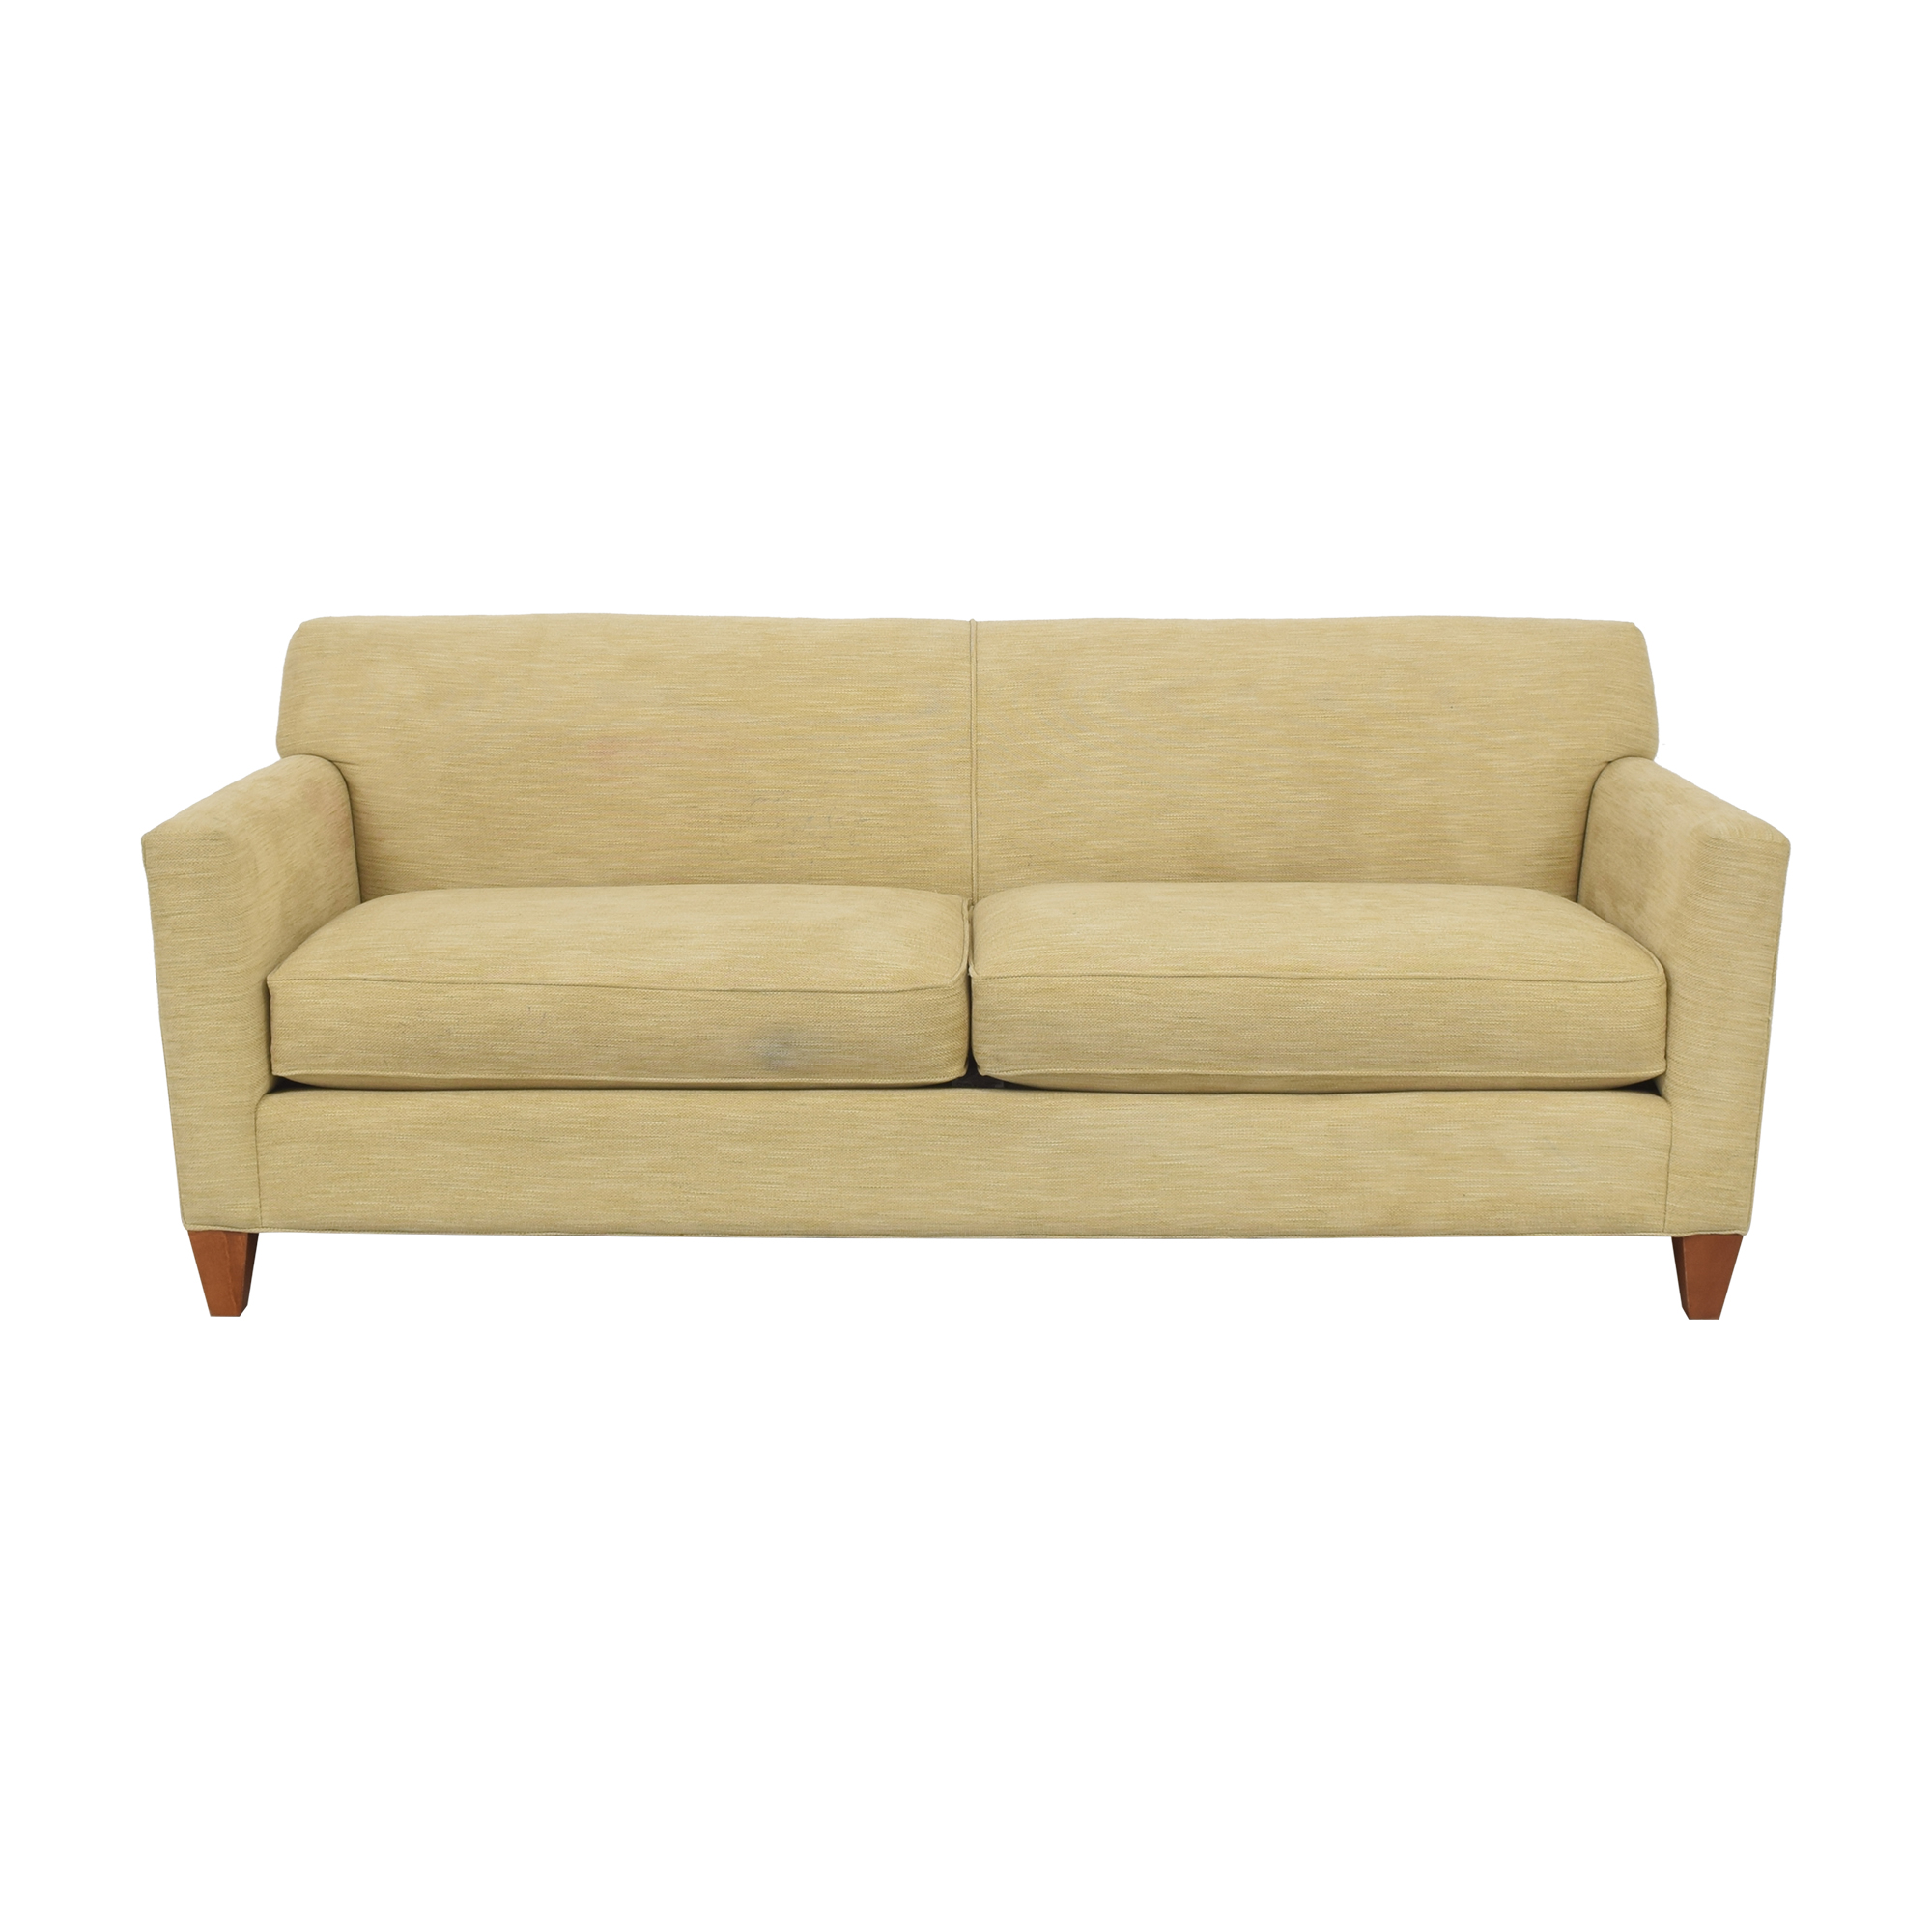 shop Crate & Barrel Crate & Barrel Two Cushion Sofa online